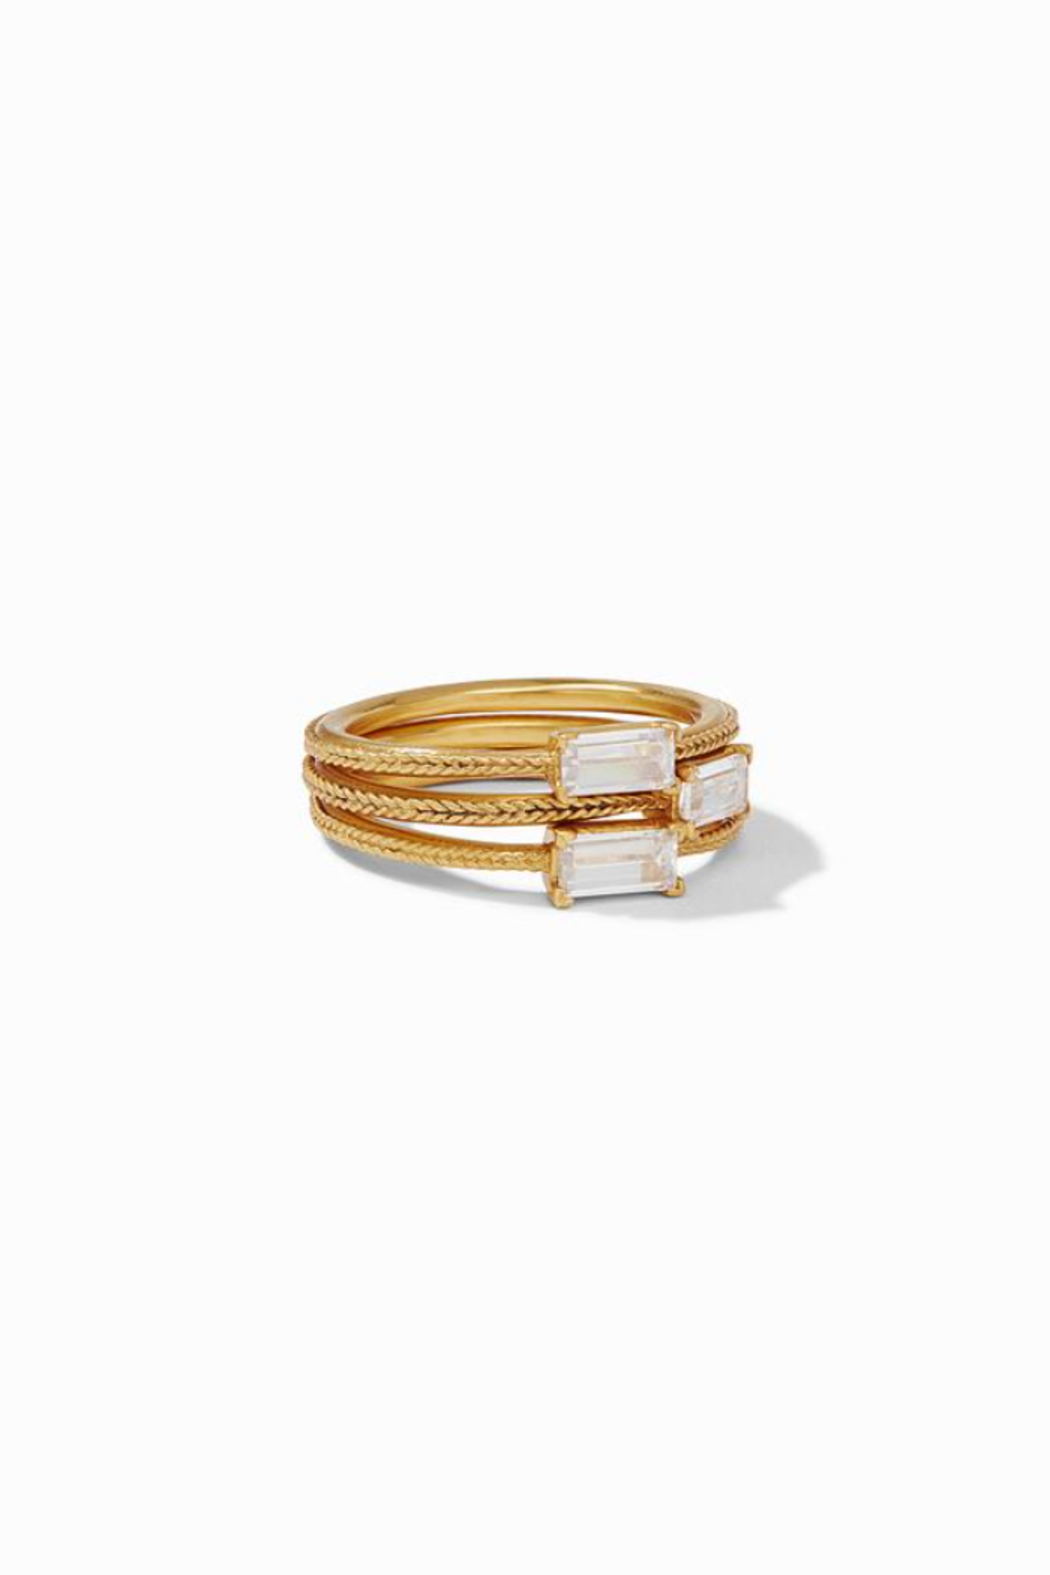 Julie Vos  Windsor Trio Ring Gold Cubic Zirconia Size 7 - Main Image